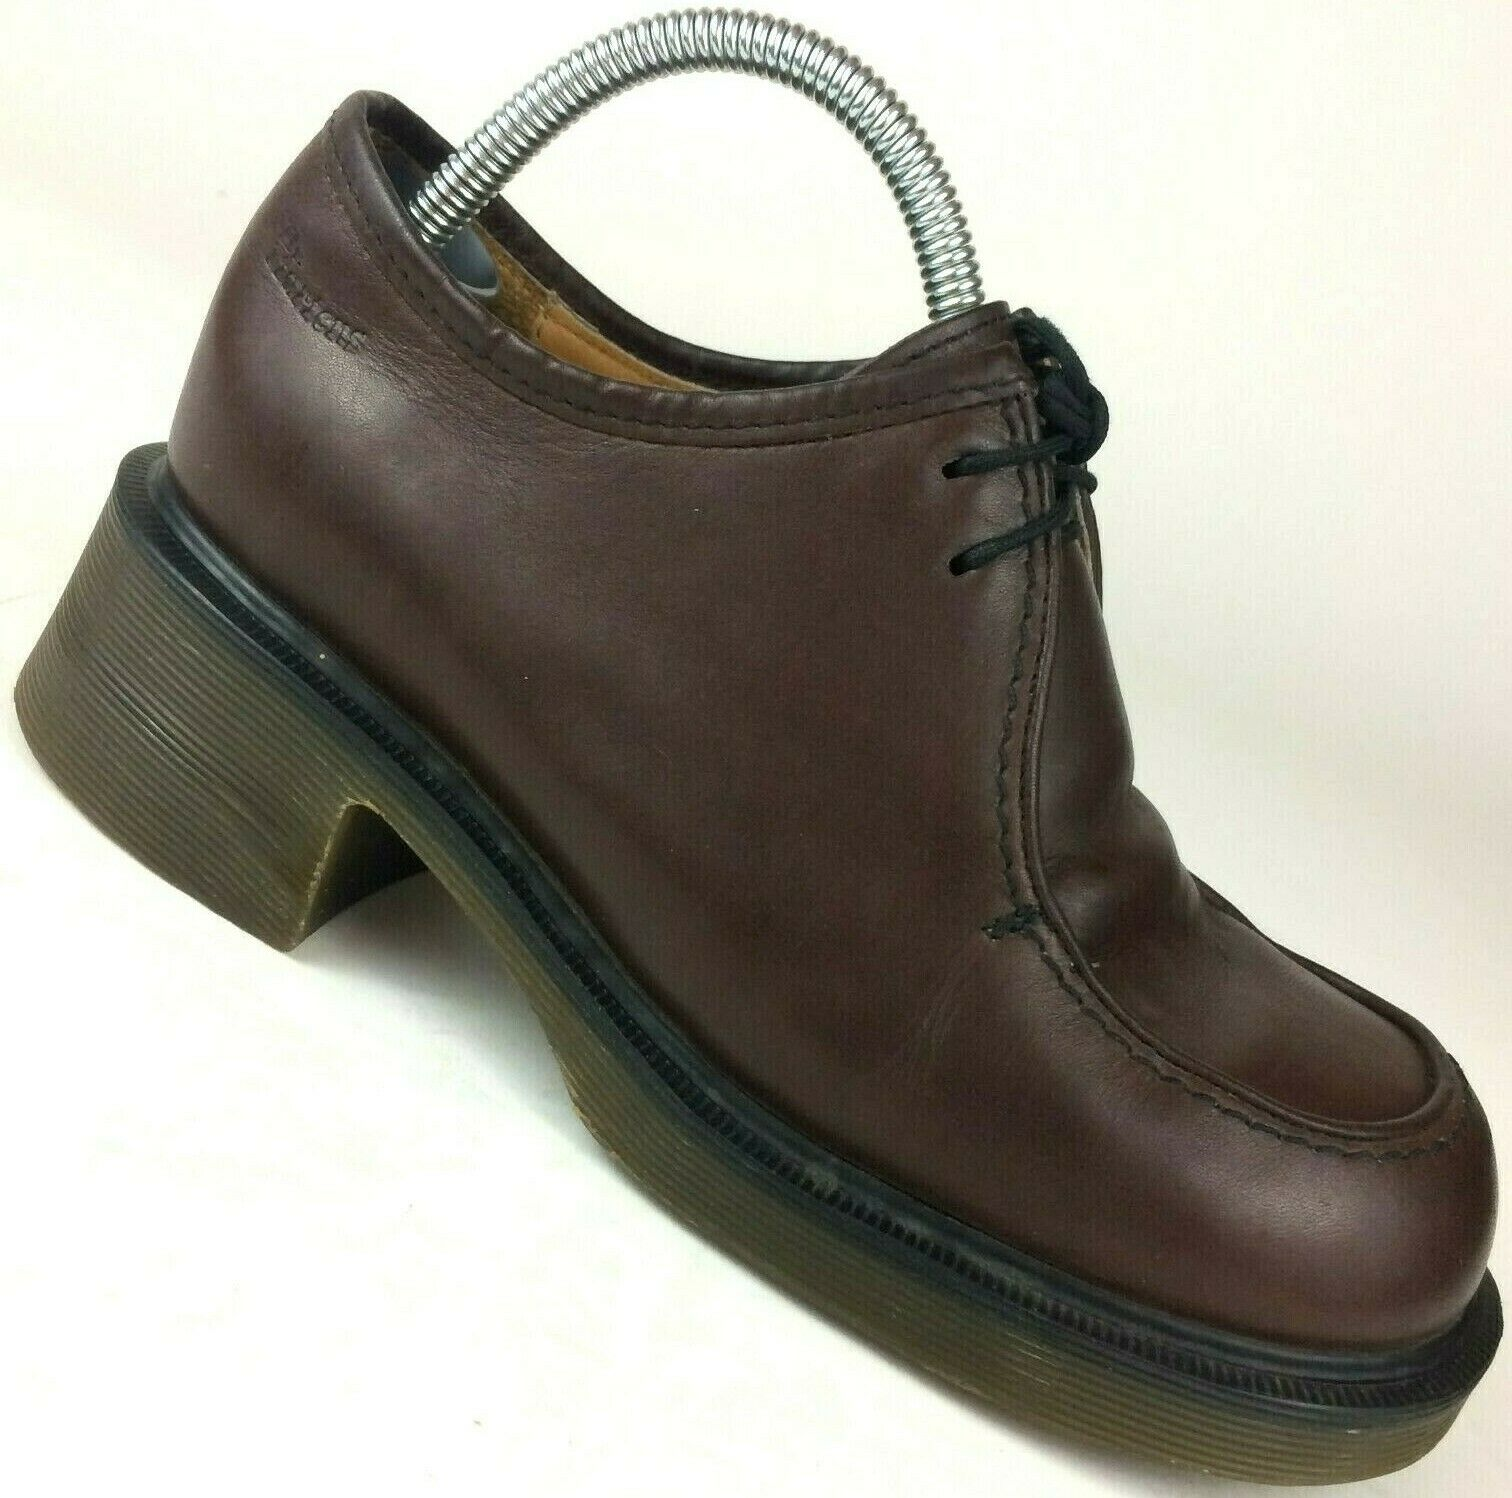 Dr Martens Brown Leather Oxford Chunky Heel shoes Boots 8669 US Womens 6